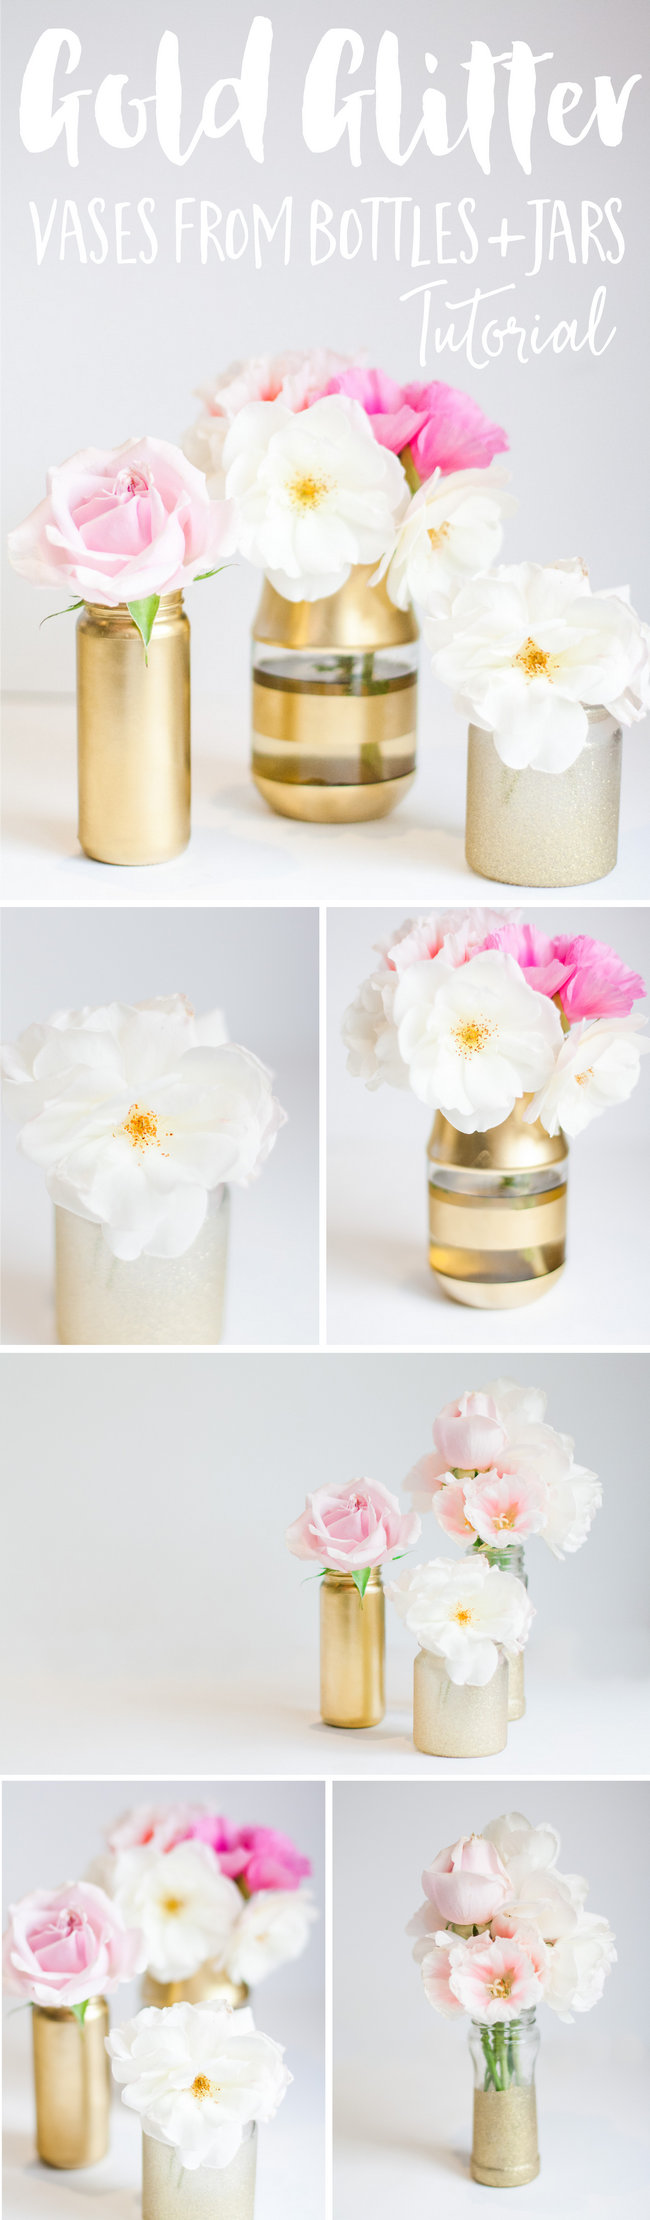 DIY Vases from Bottles (2)